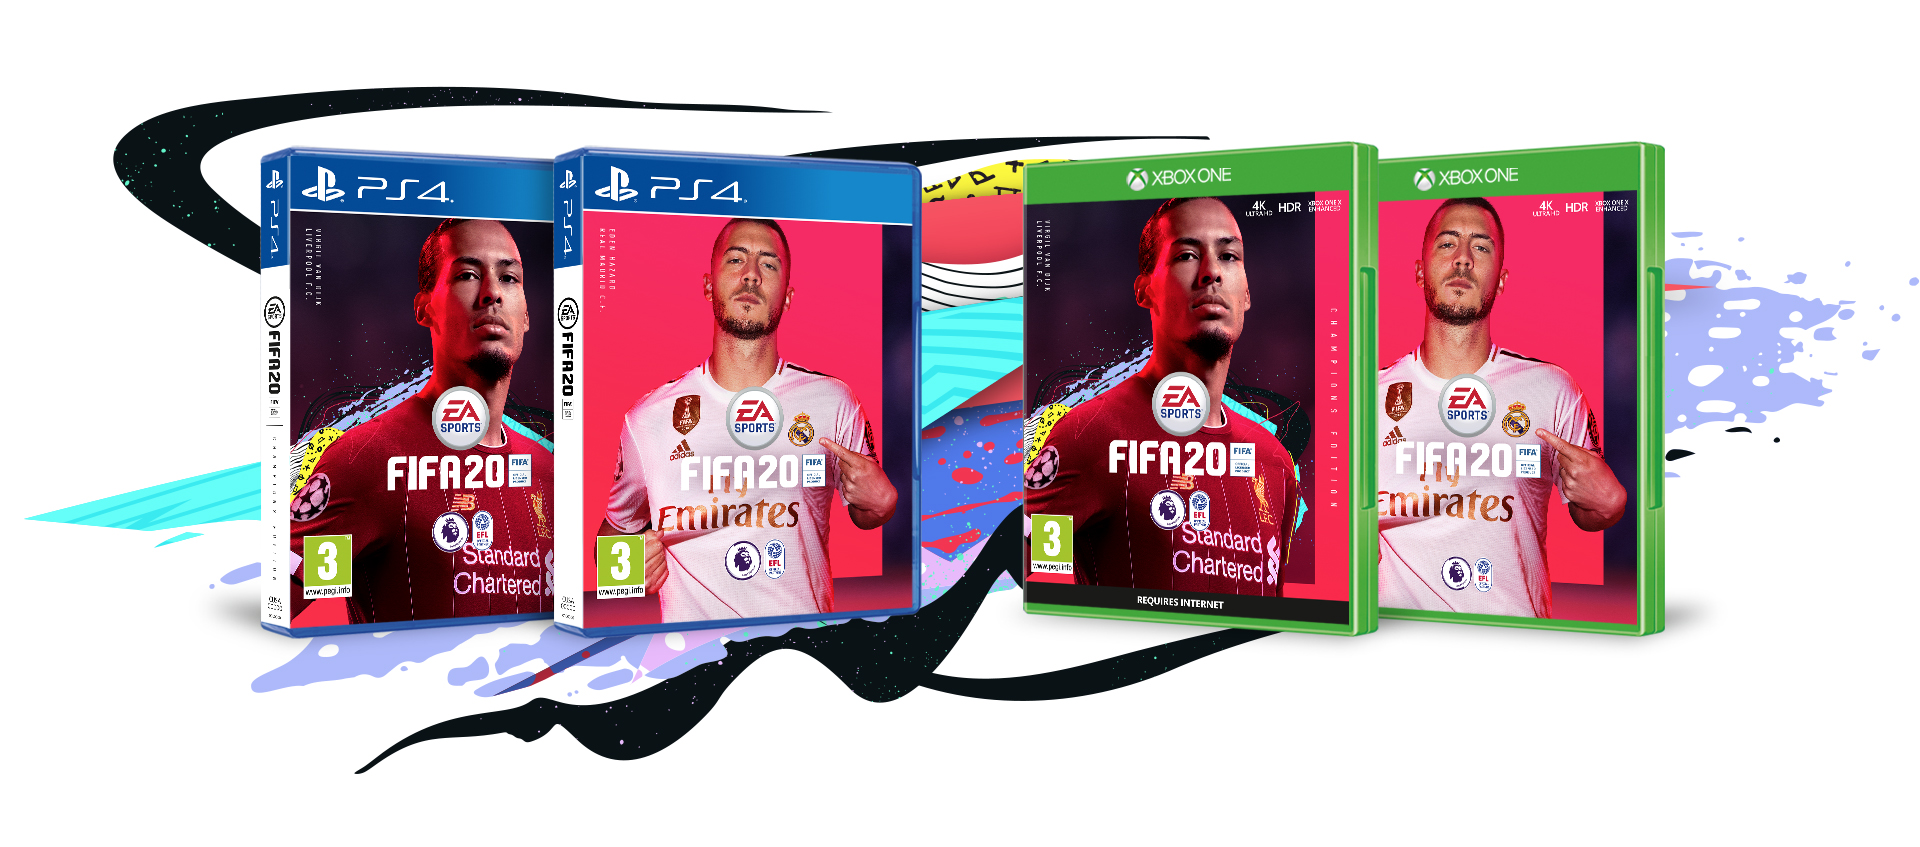 packfront-ea-fifa-artwork